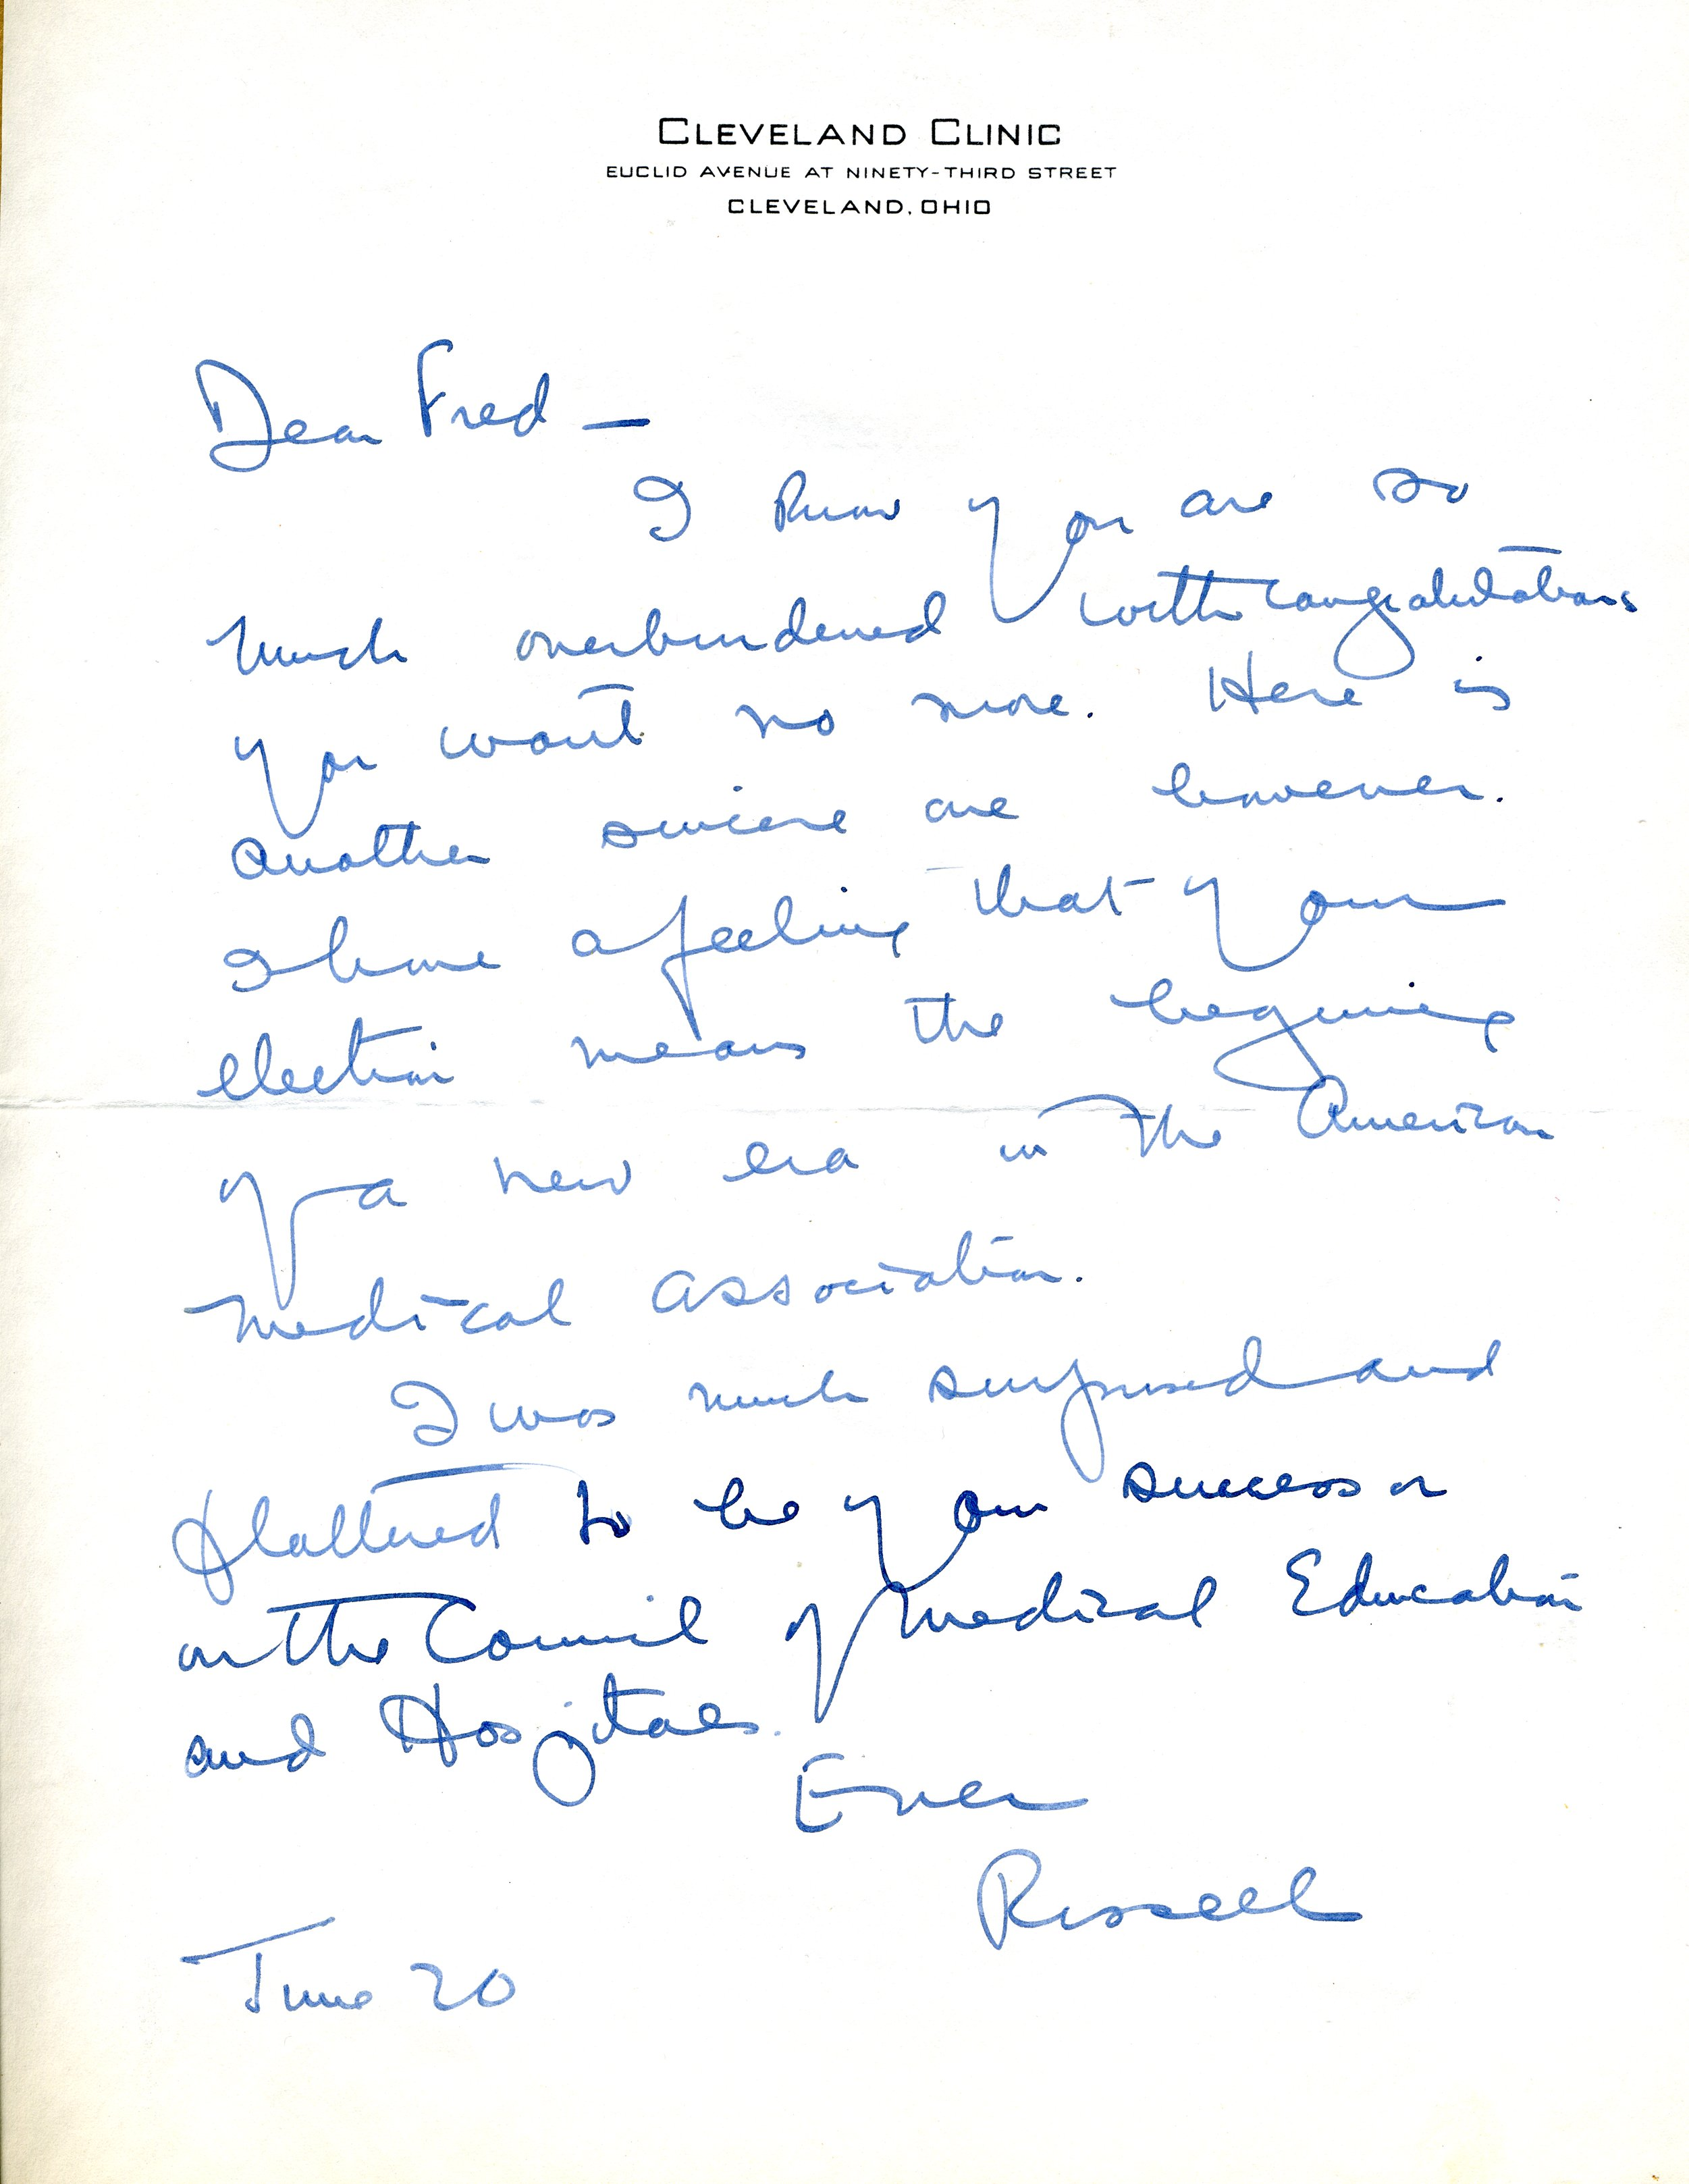 Letter from Russell [??], Cleveland Clinic, Cleveland, Ohio, to Fred